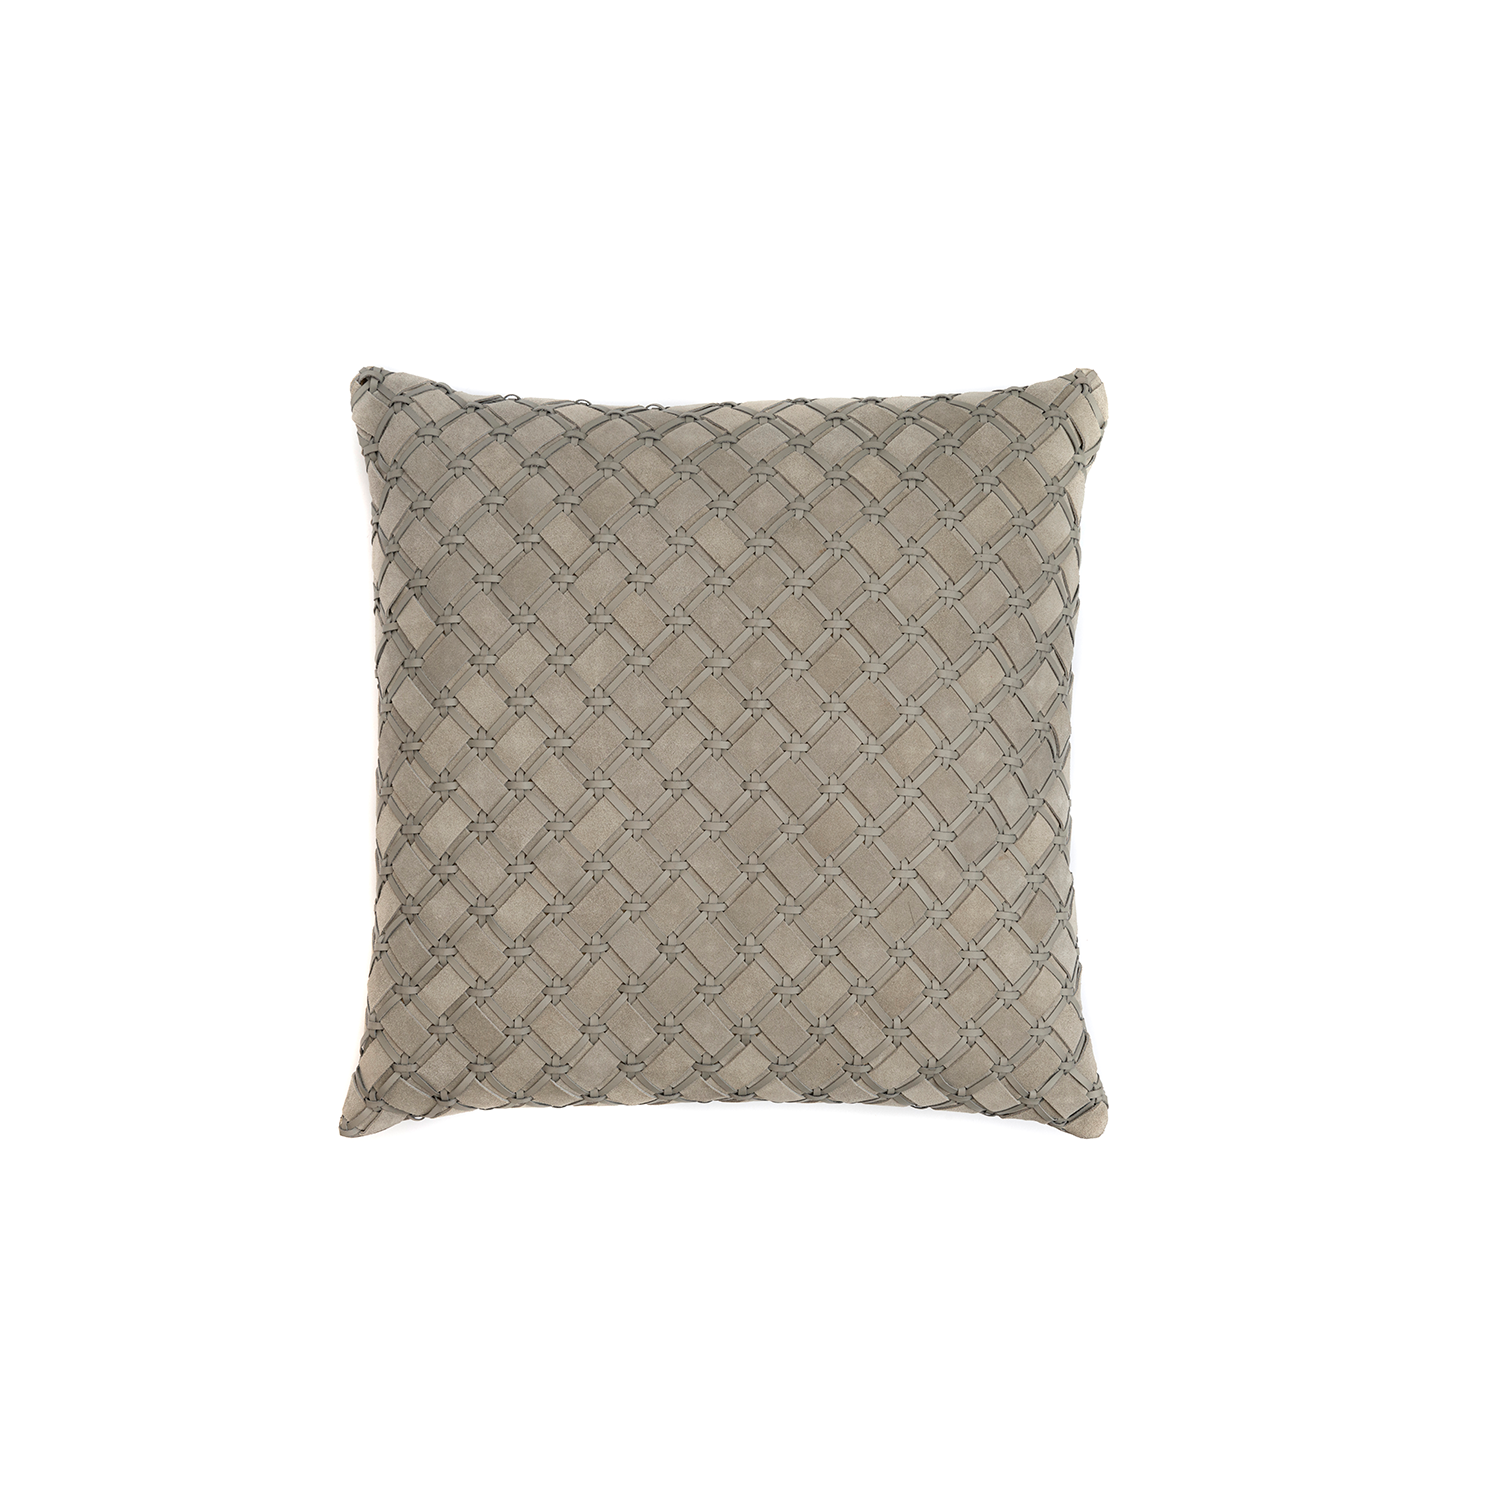 Geometrico Woven Leather Cushion Square - The Geometrico Woven Leather Cushion is designed to complement an ambient with a natural and sophisticated feeling. This cushion style is available in pleated leather or pleated suede leather. Elisa Atheniense woven handmade leather cushions are specially manufactured in Brazil using an exclusive treated leather that brings the soft feel touch to every single piece.   The front panel is handwoven in leather and the back panel is 100% Pes, made in Brazil.  The inner cushion is available in Hollow Fibre and European Duck Feathers, made in the UK.  Please enquire for more information and see colour chart for reference.   | Matter of Stuff